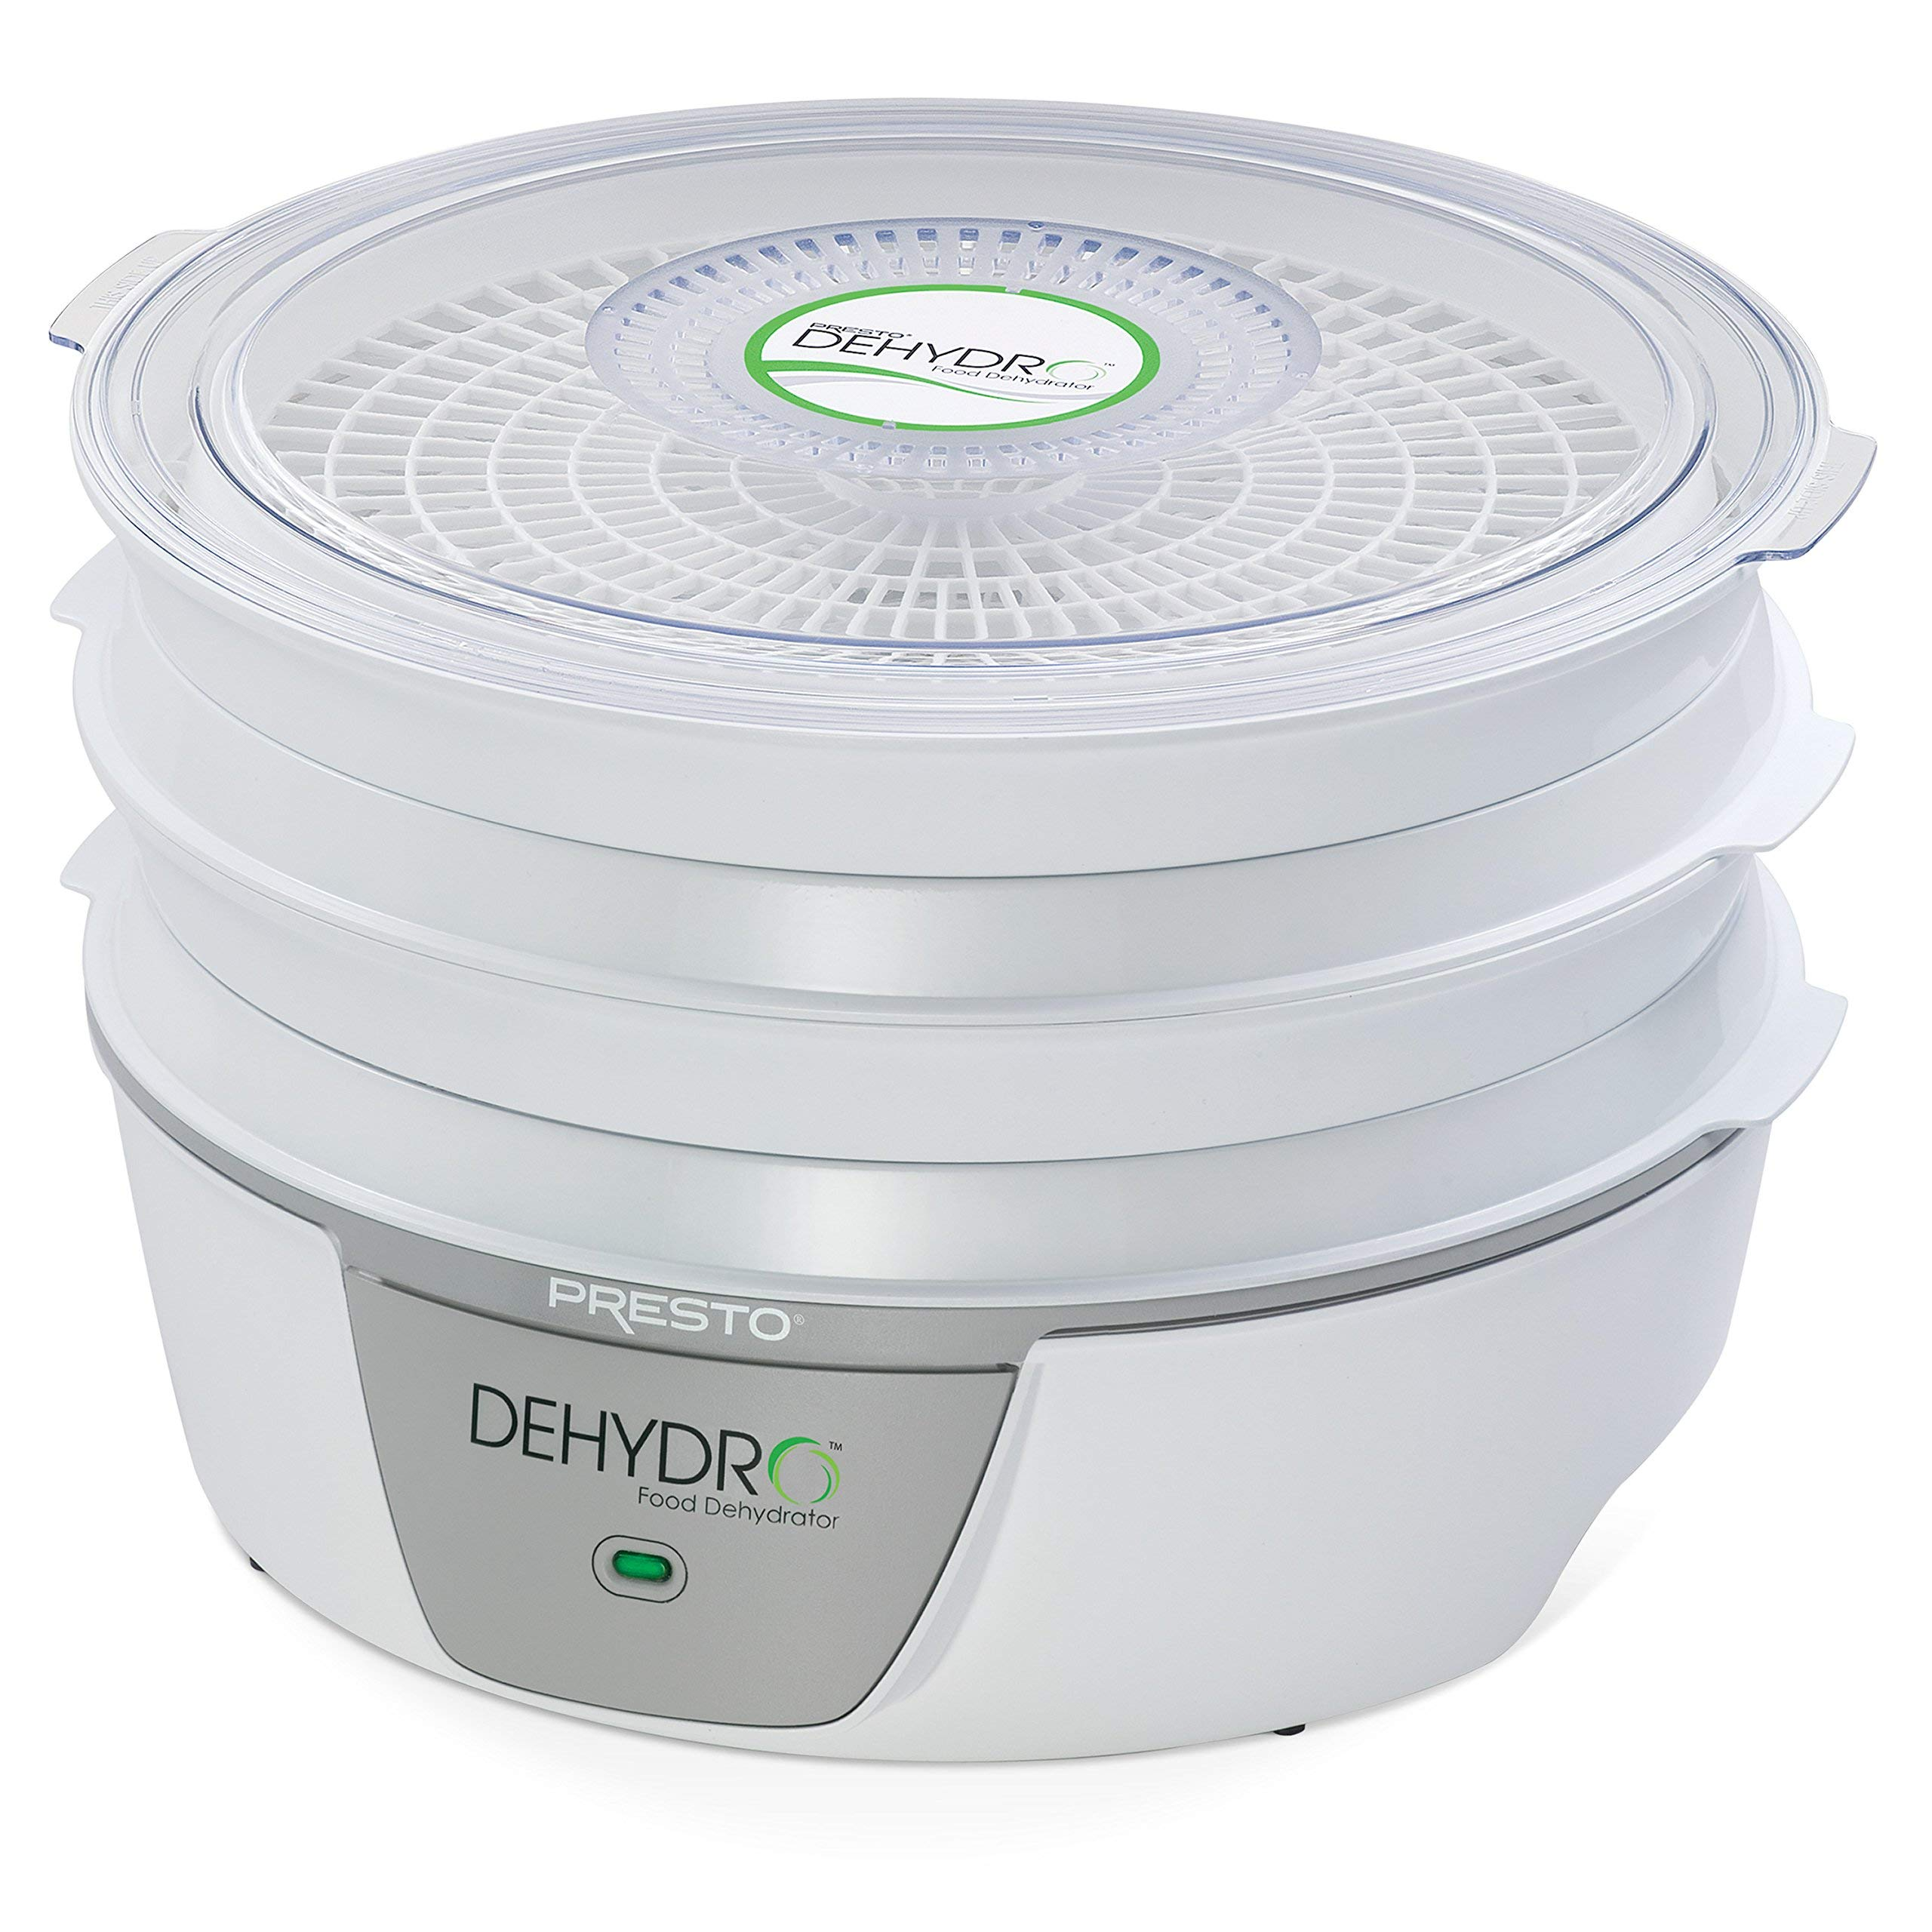 Premium Pack 06300 Dehydro Electric Food Dehydrator